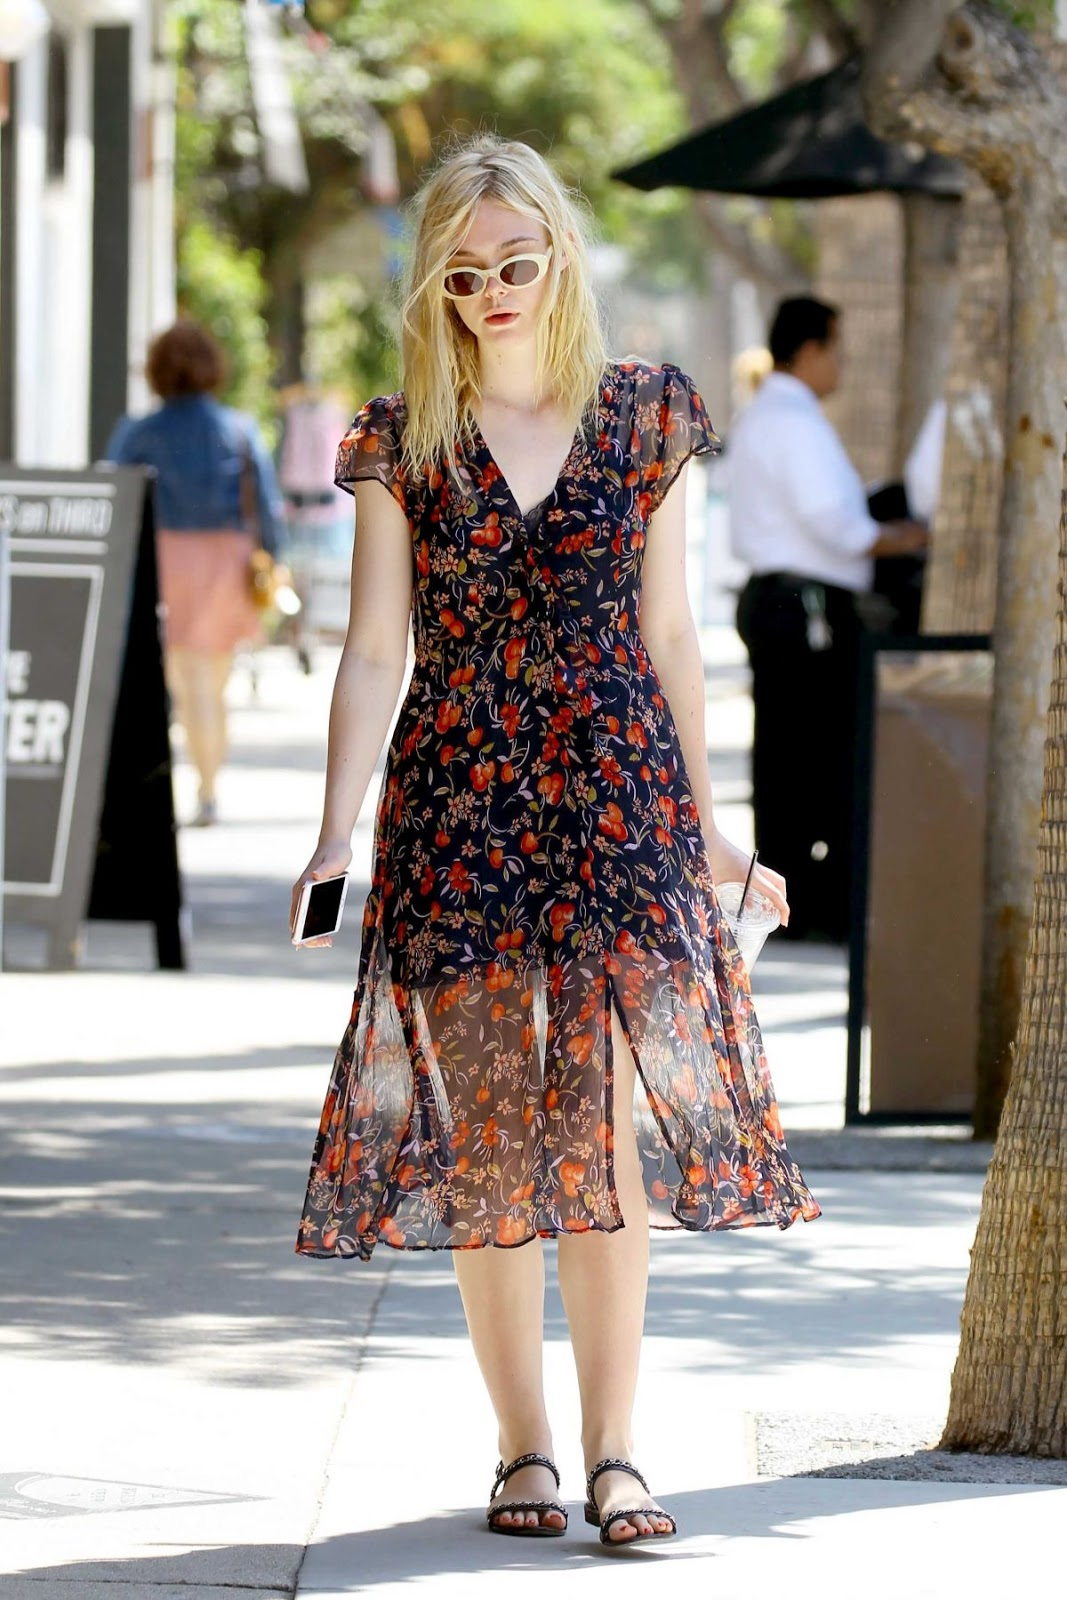 HQ Photos of Elle Fanning out in Studio City